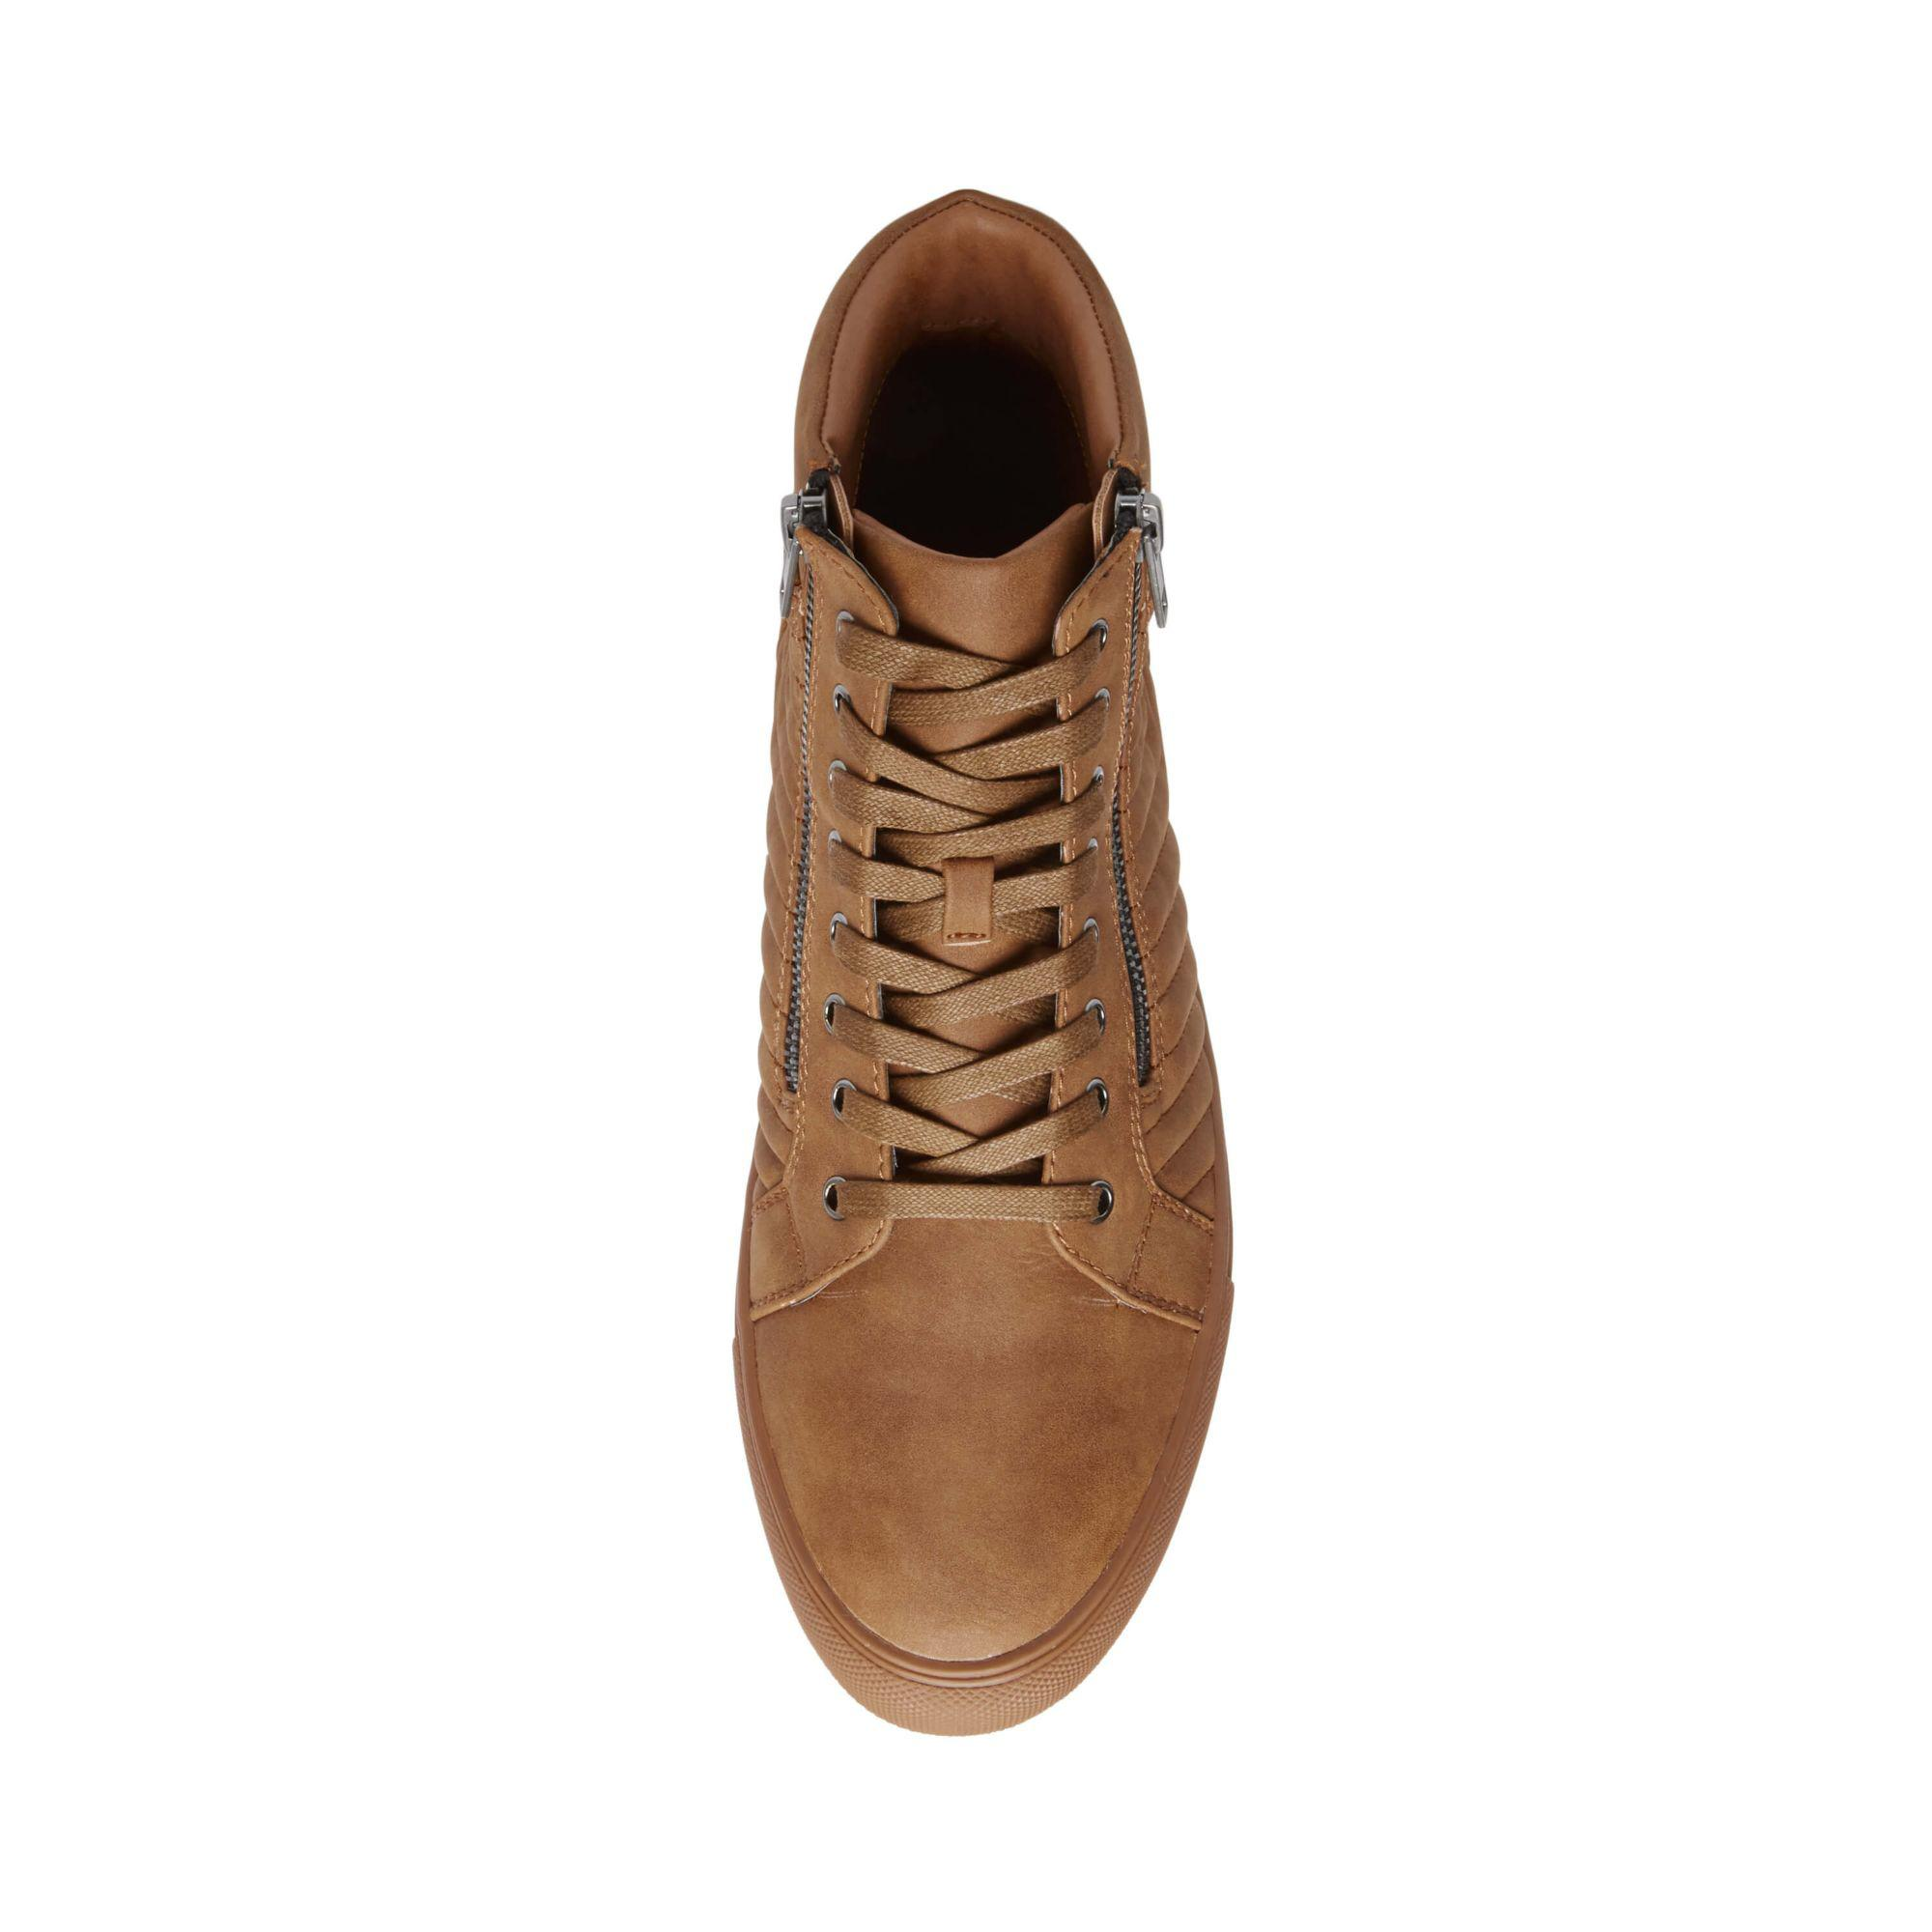 55d69cf02fd Lyst - Steve Madden Punted in Brown for Men